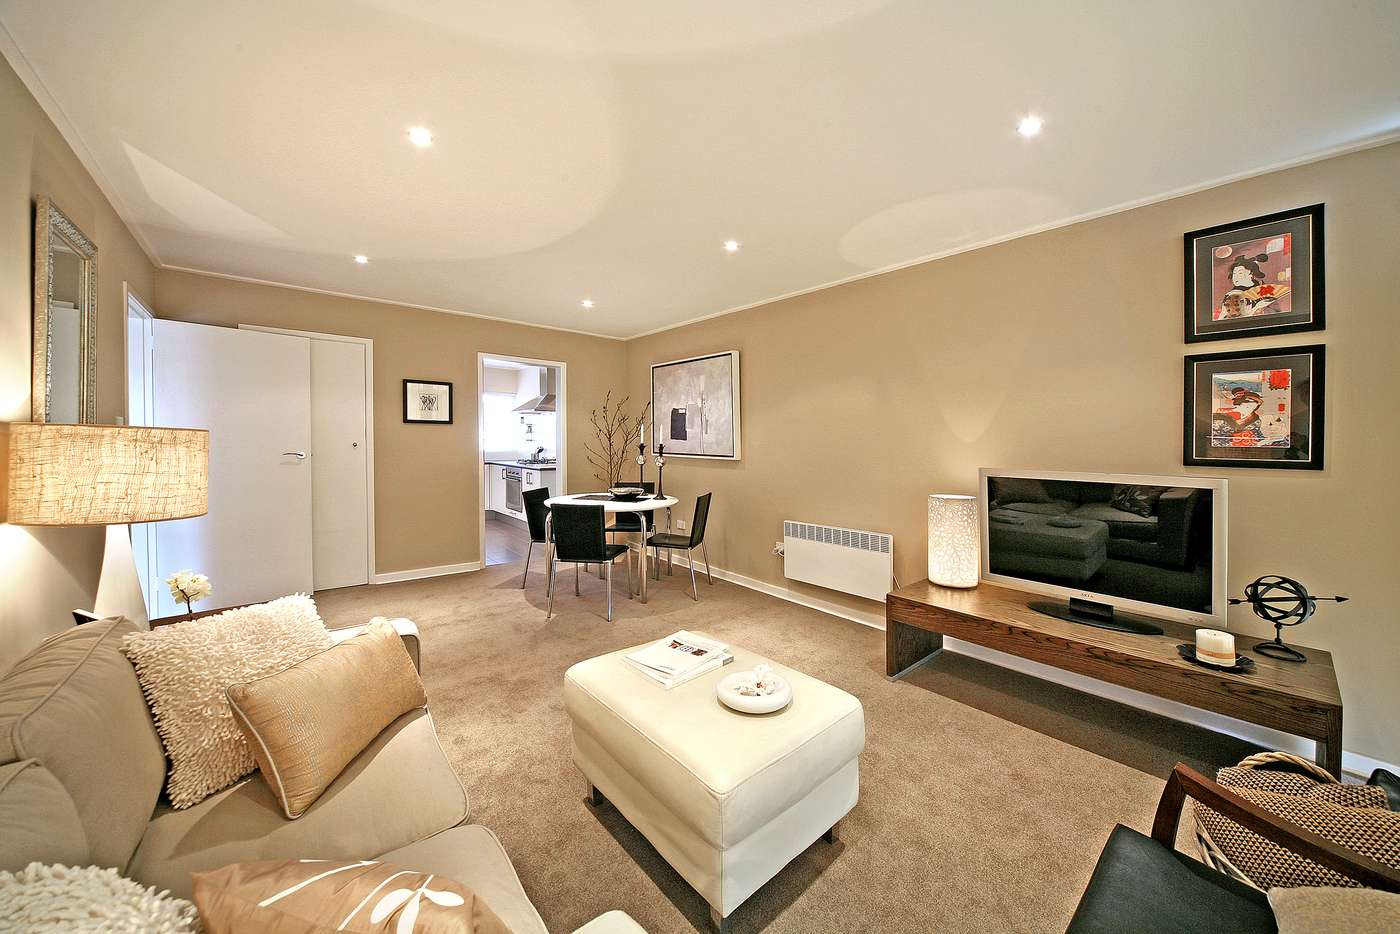 Main view of Homely apartment listing, 22/61 Kooyong  Road, Armadale VIC 3143